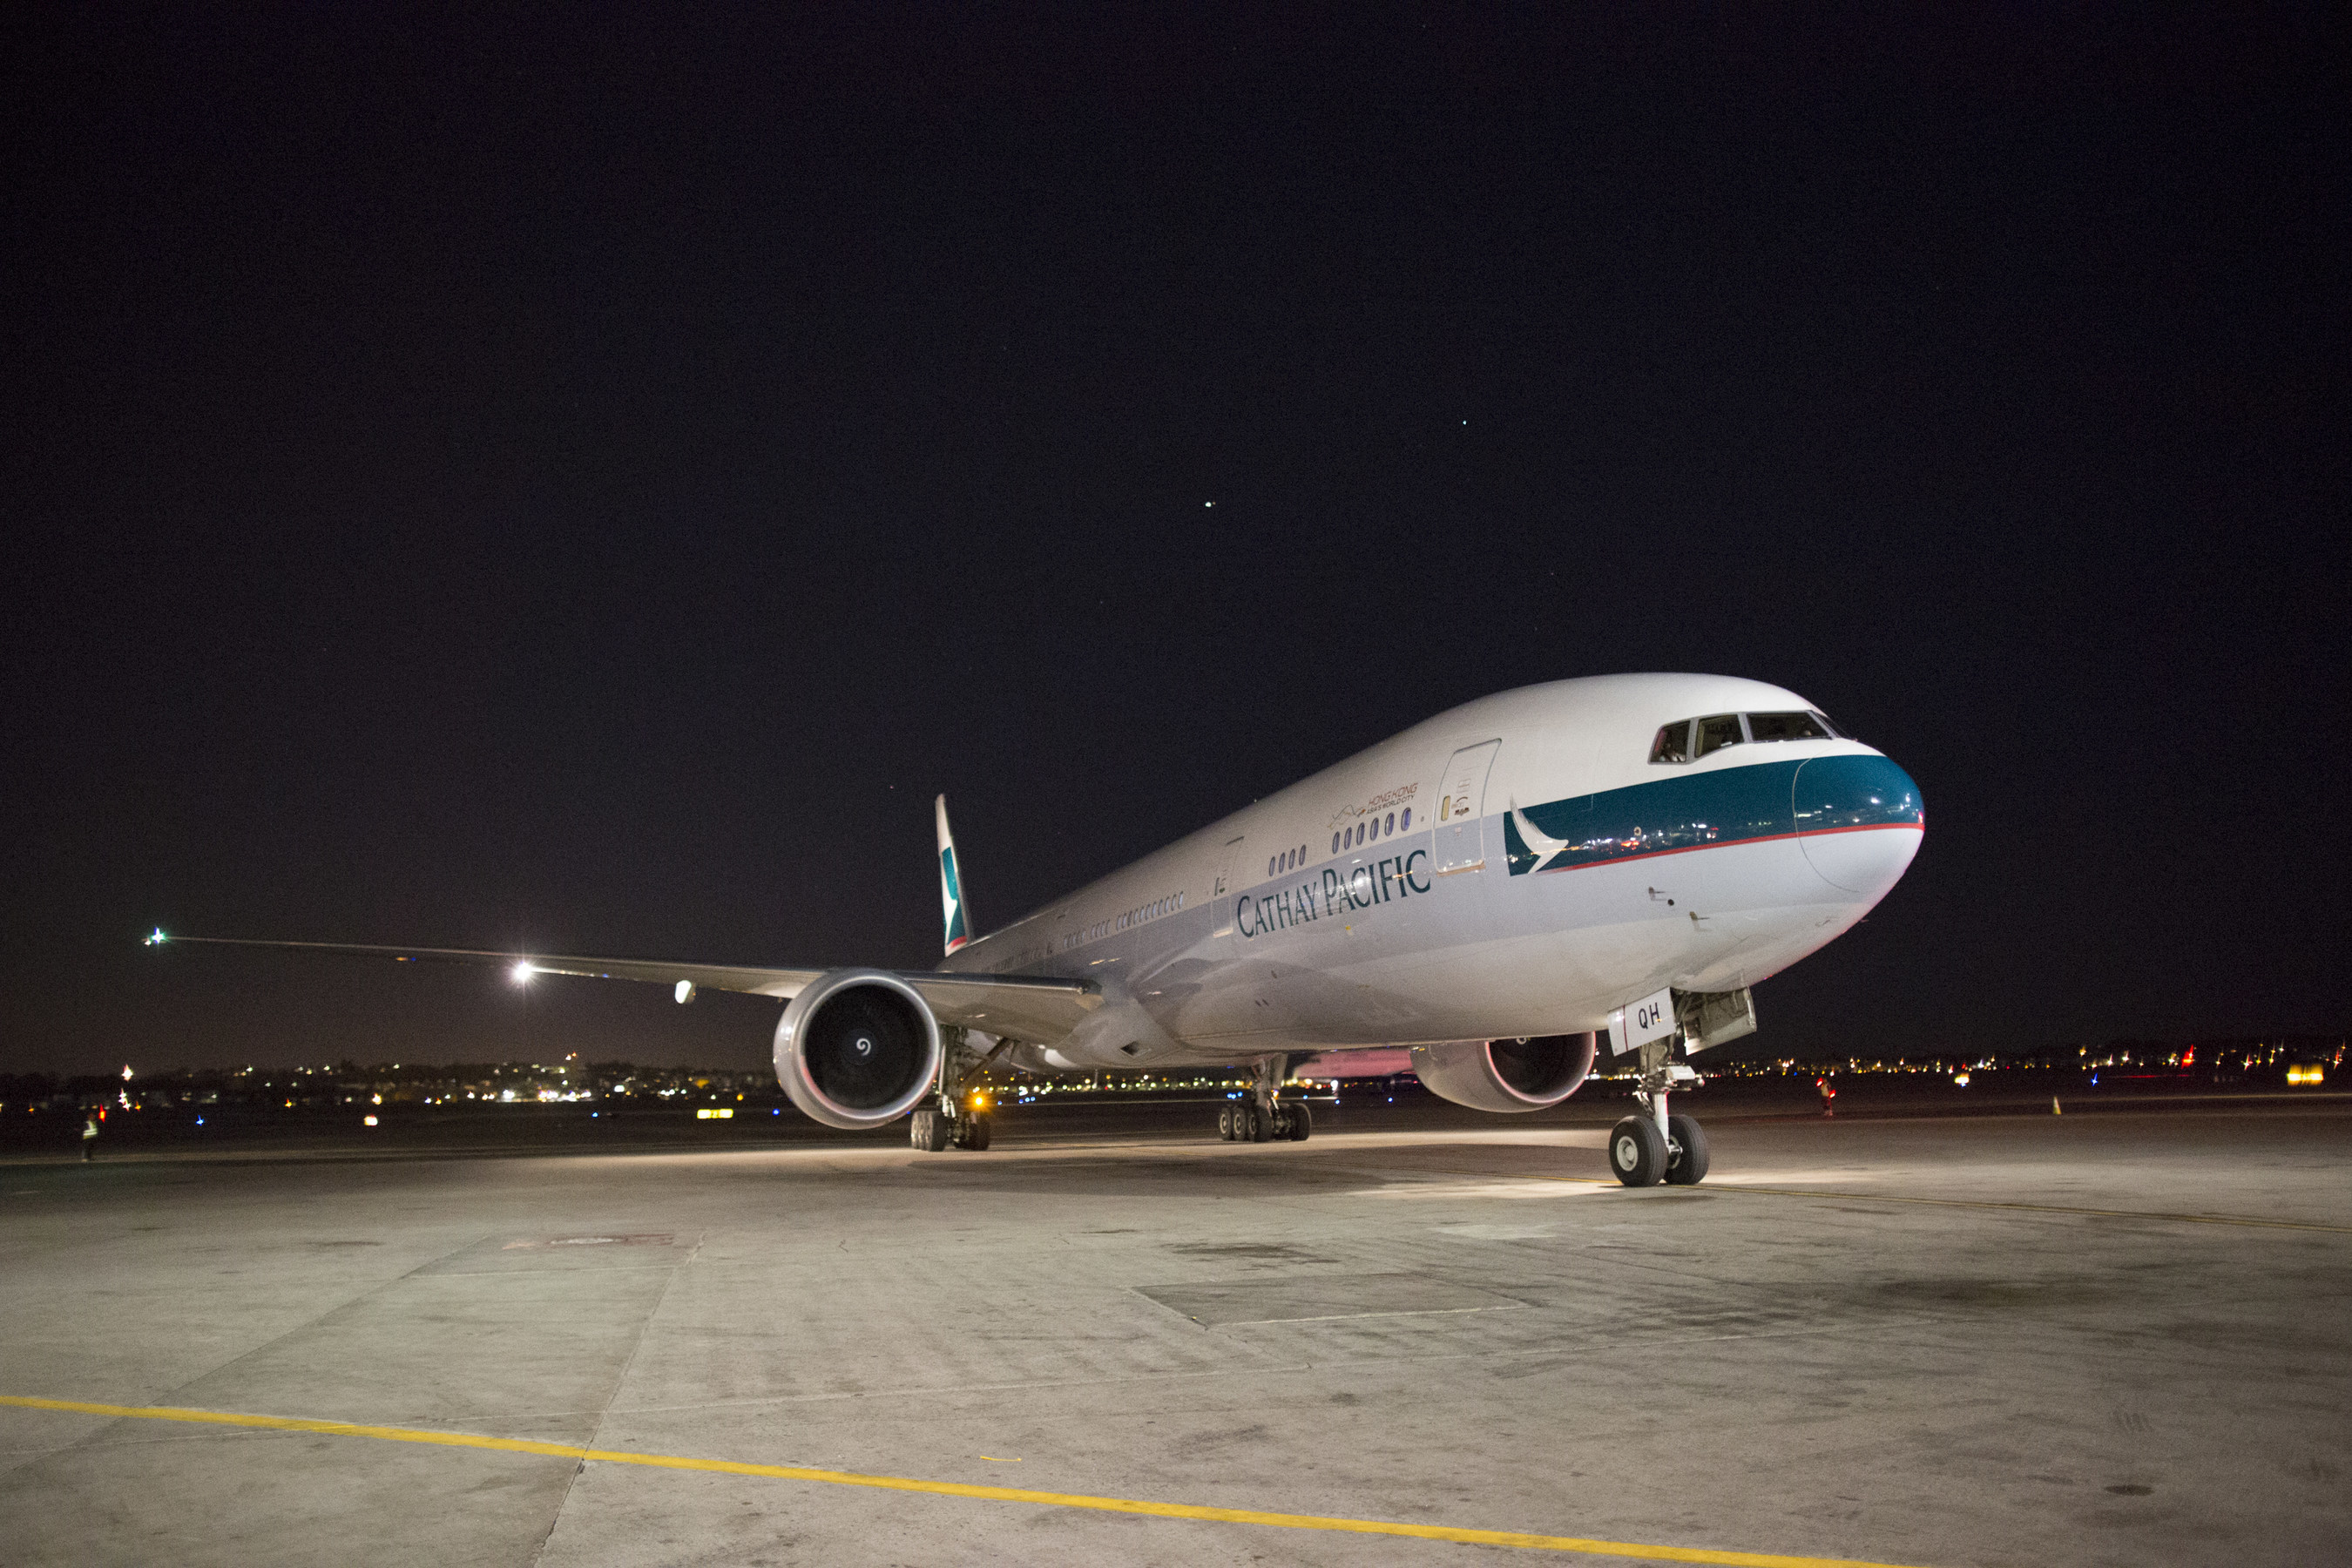 Cathay Pacific's first flight lands at Boston Logan Airport